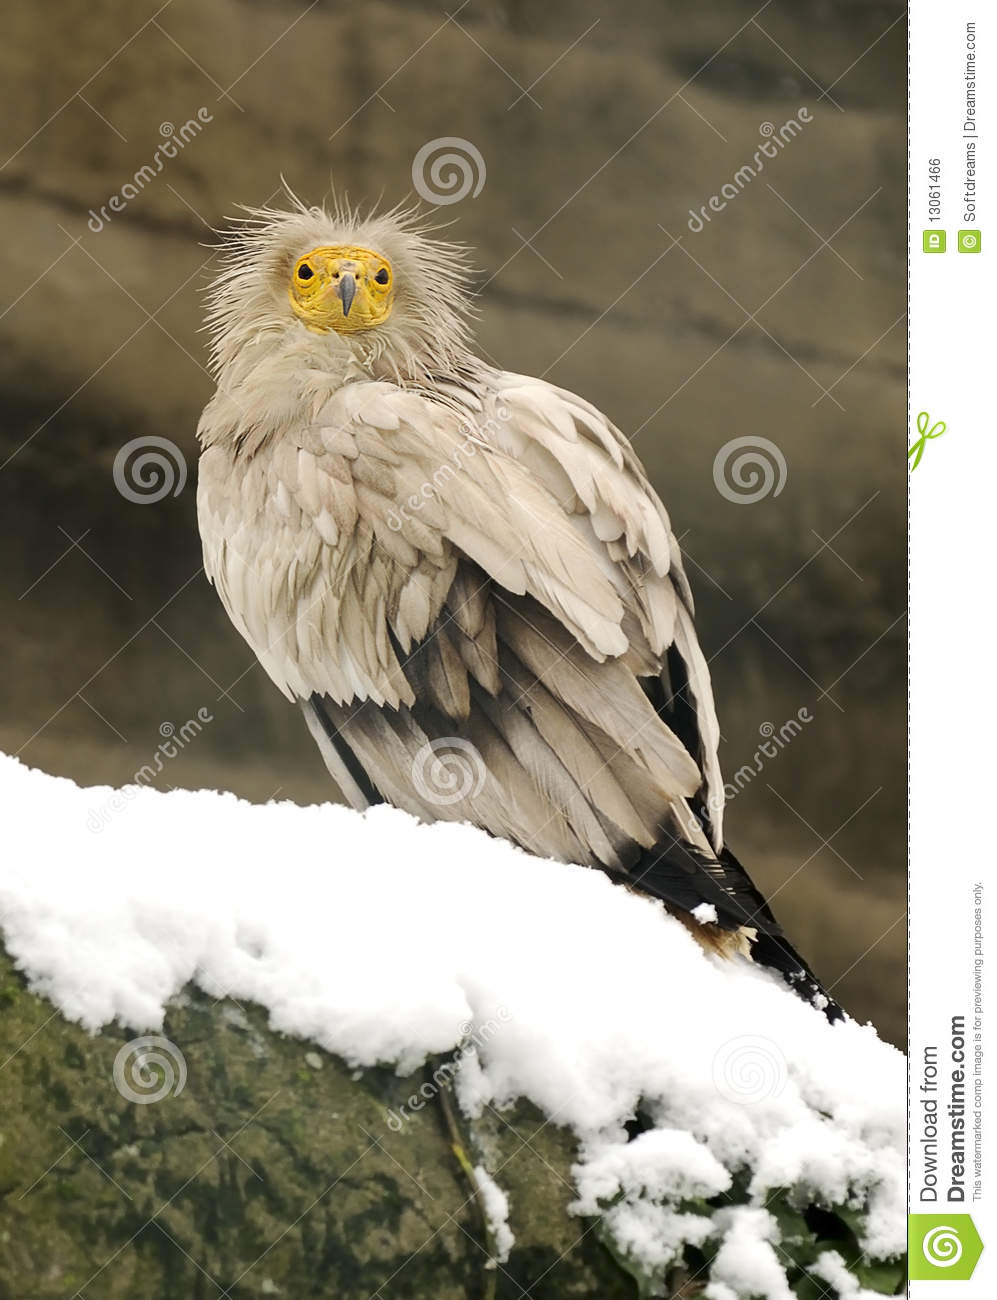 Vulture Baby Royalty Free Stock Image - Image: 13061466